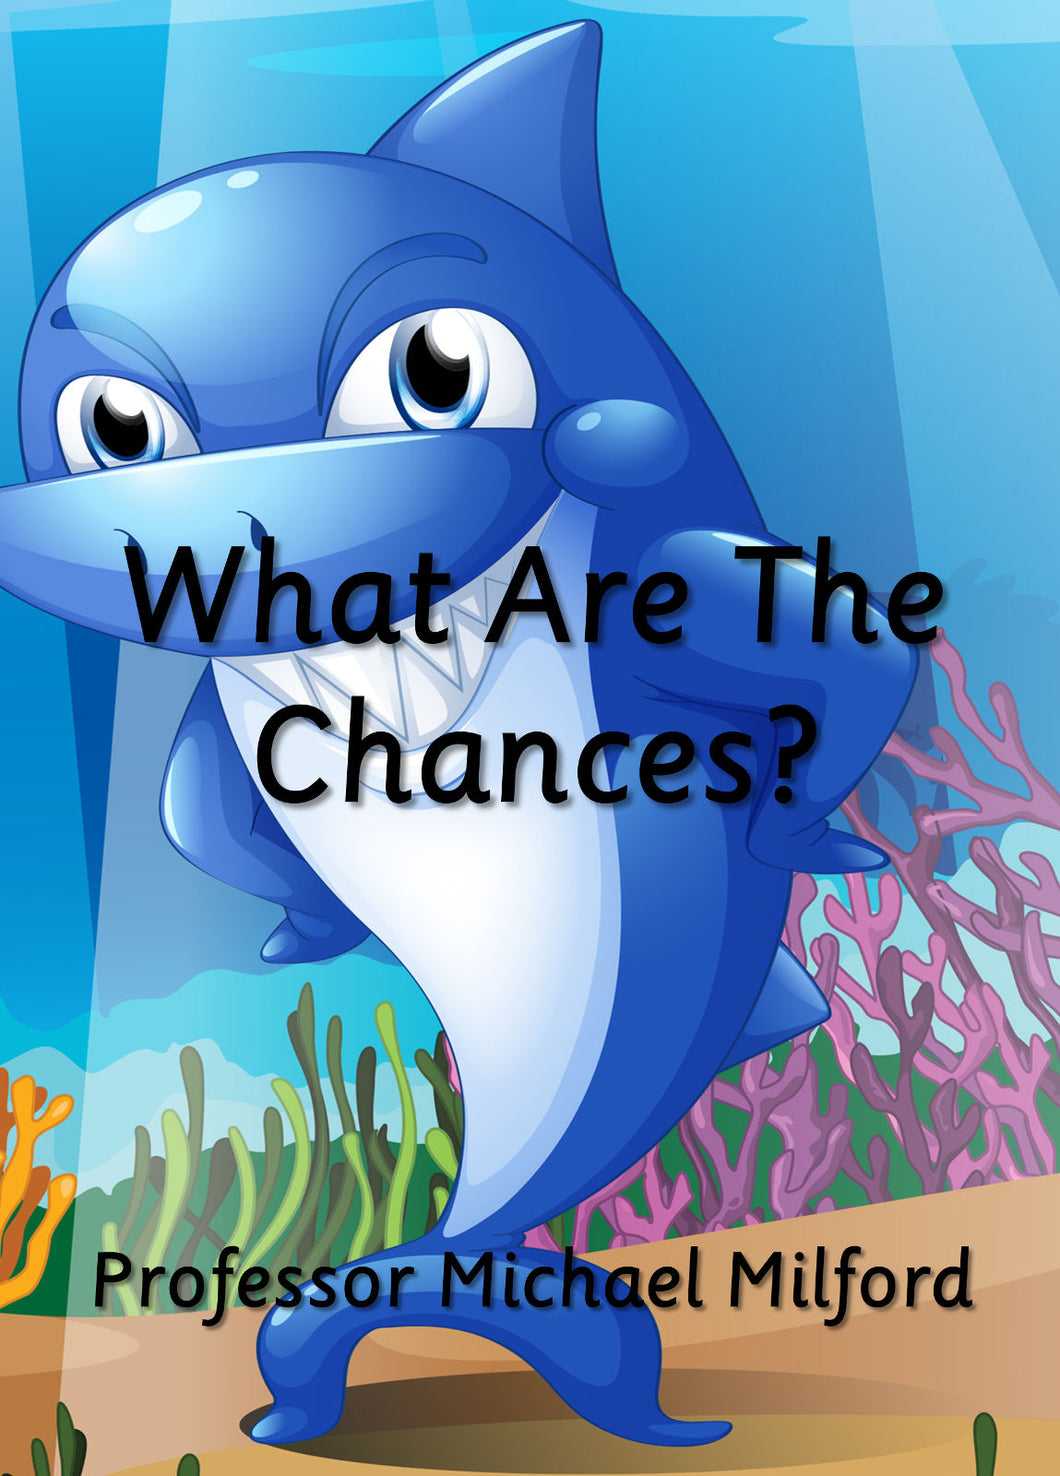 What Are The Chances? (E-book only)